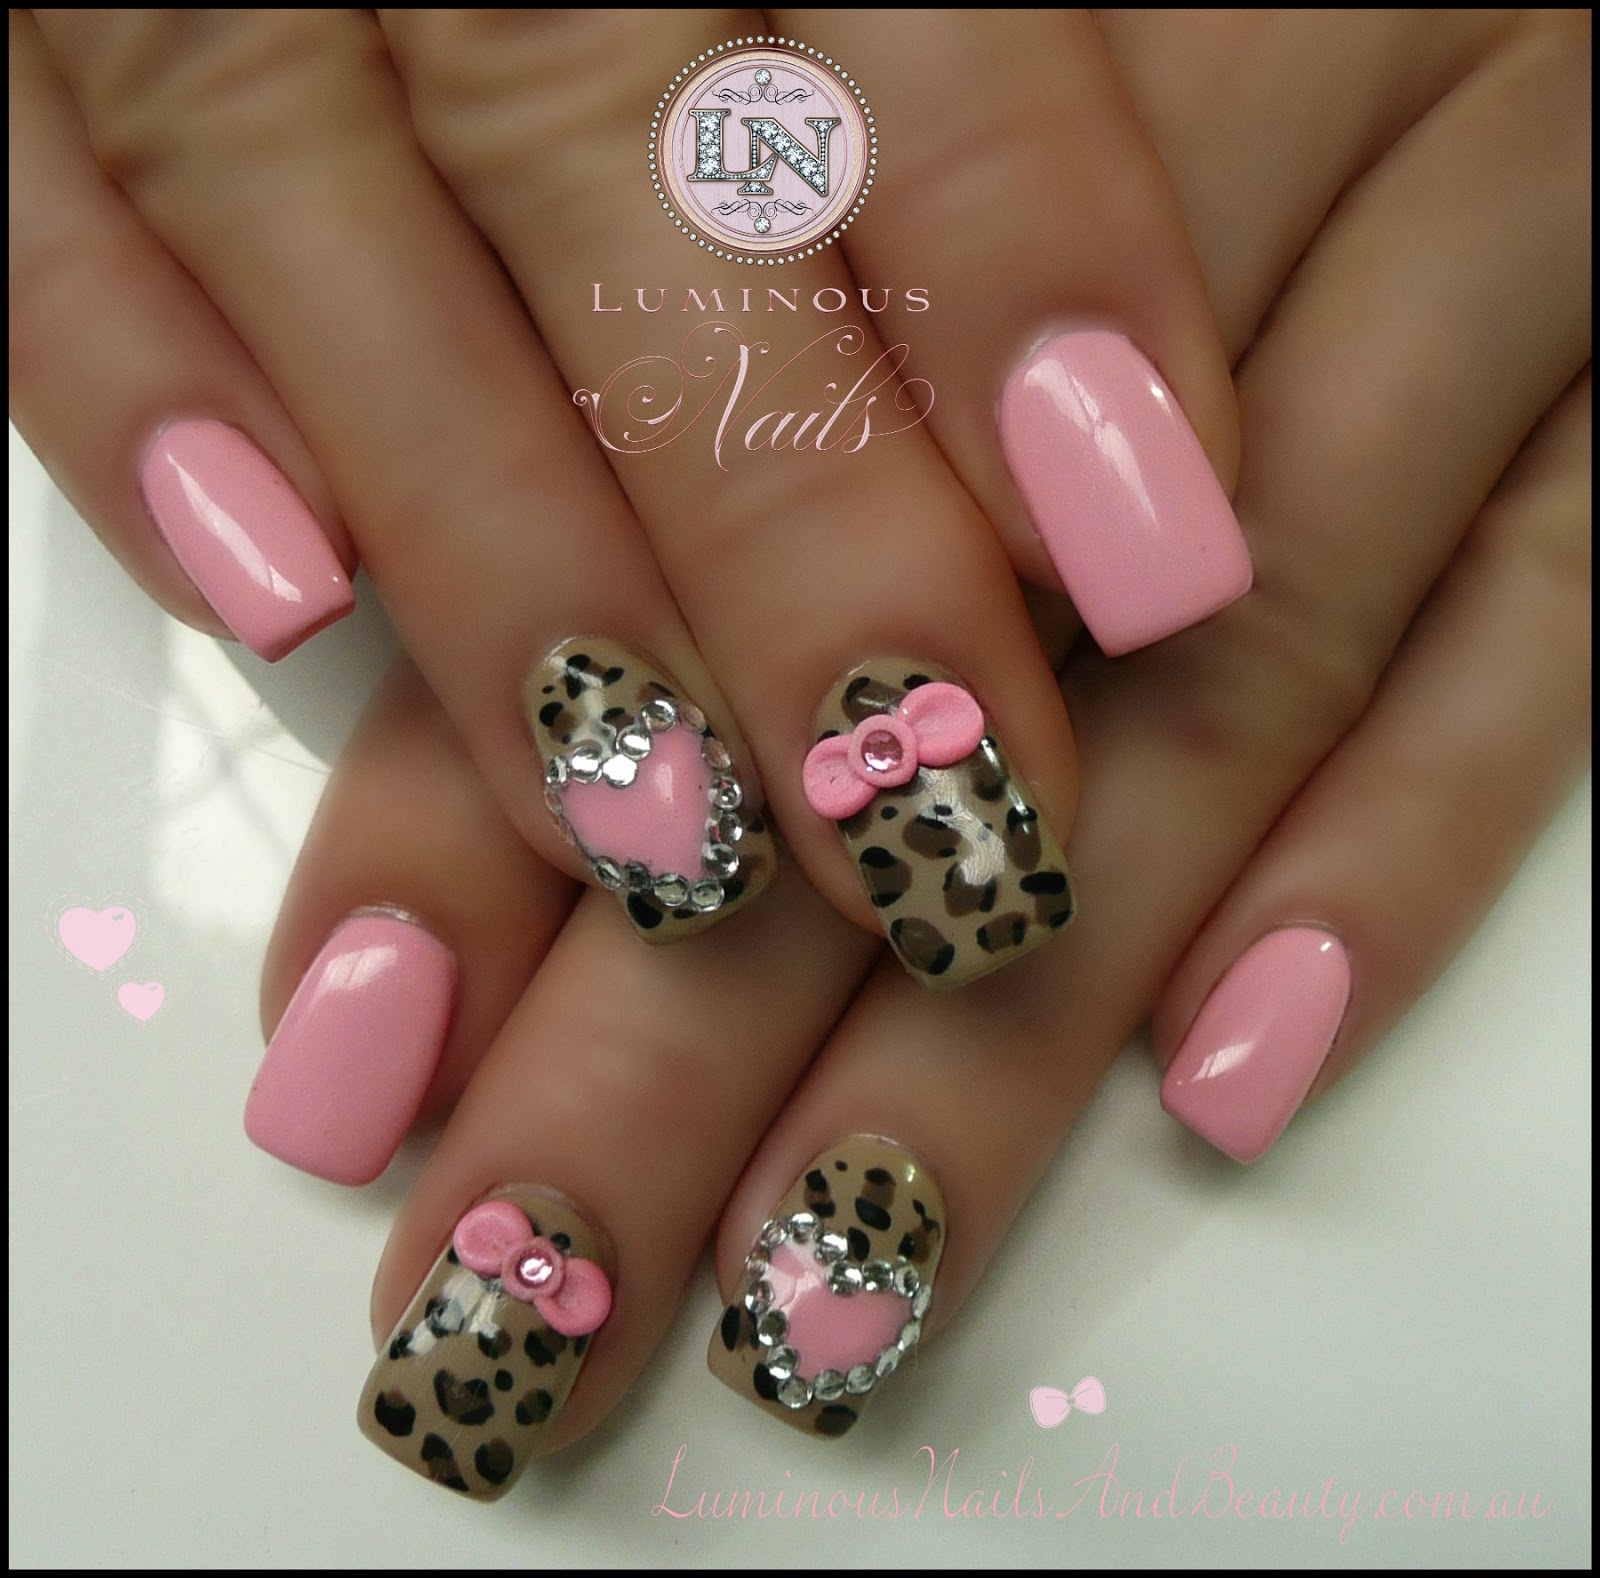 Adorable Nail Designs: Luminous Nails: February 2013